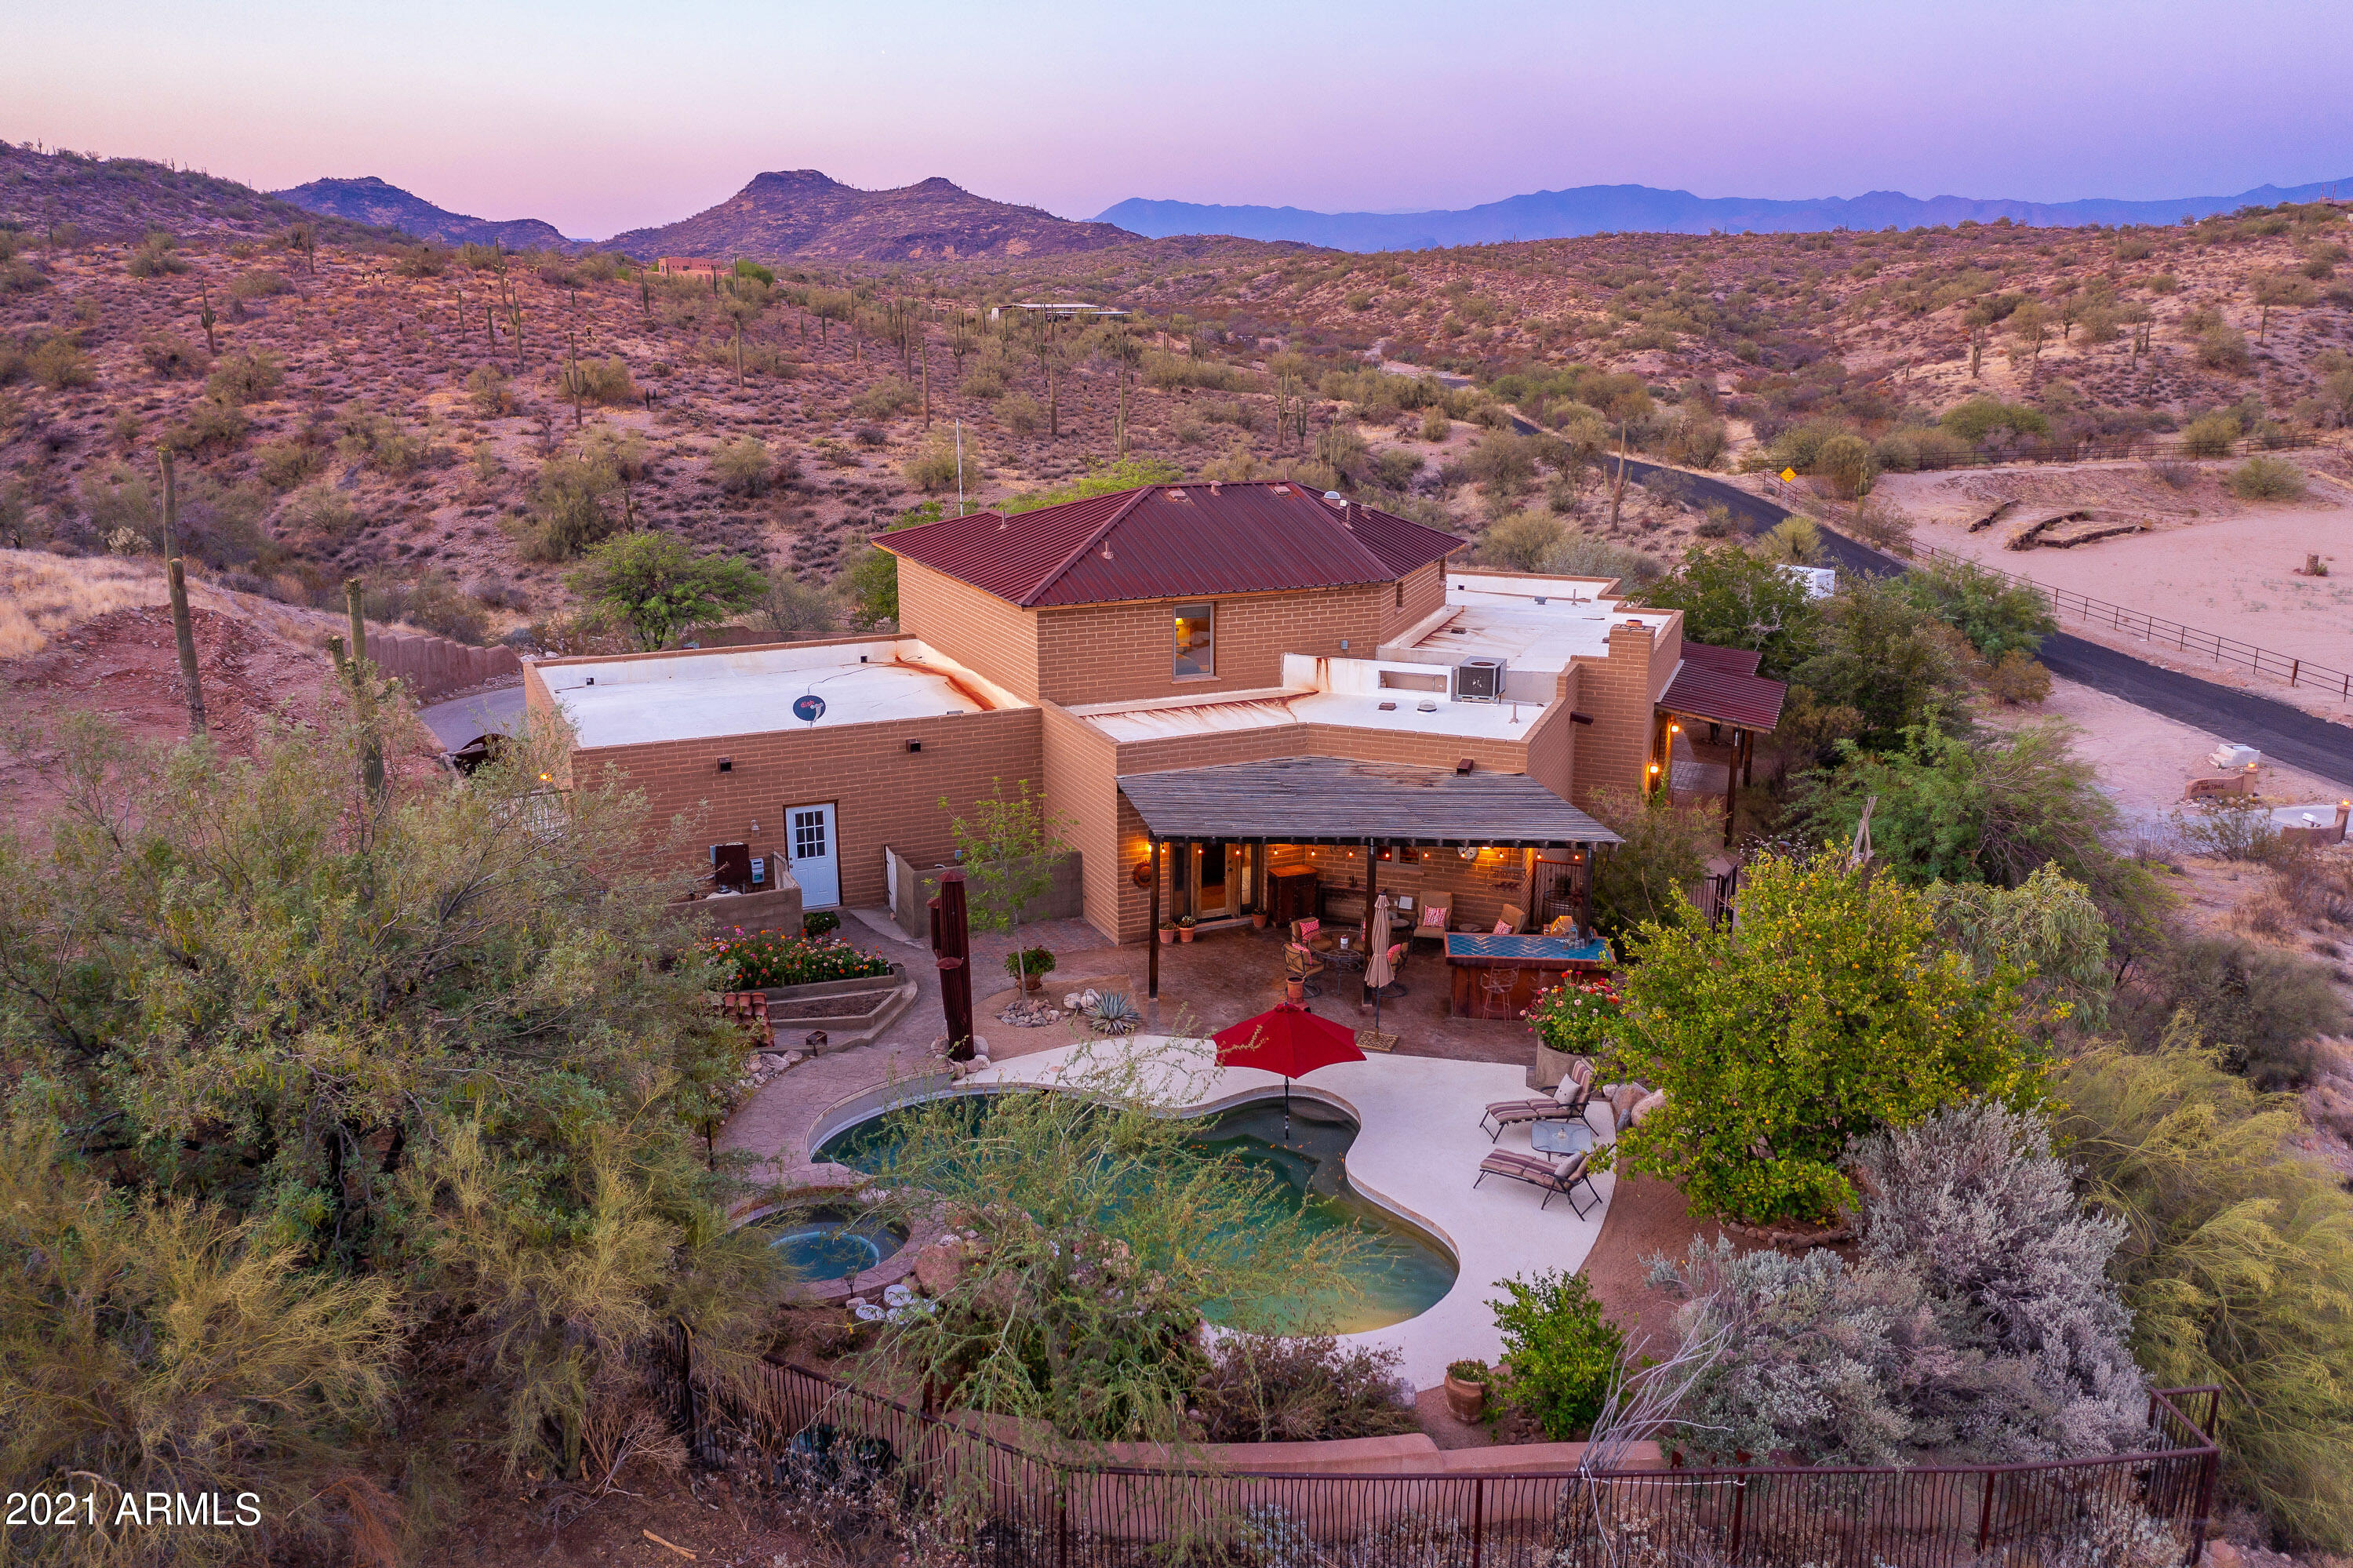 Amazing opportunity to own this gorgeous, quality custom-built Adobe home perfectly positioned on a hillside 4.5-acre lot! The solid 18'' adobe brick walls provide savings in energy year-round. As you enter you will love the flagstone flooring and open great room that is perfect for entertaining. The gourmet kitchen features hickory wood cabinets, stainless appliances and granite countertops. This home is truly one of a kind with alder wood doors, wood hickory flooring, and custom wood beams. The spacious master suite has a travertine shower, soaking tub, and walk-in closet. The backyard sanctuary features a saltwater pool/spa and covered patio space with an outdoor bar and barbecue area. There is a 2-3 horse barn and arena for the horse lover. Ride into the serene Tonto Forest and enjoy!